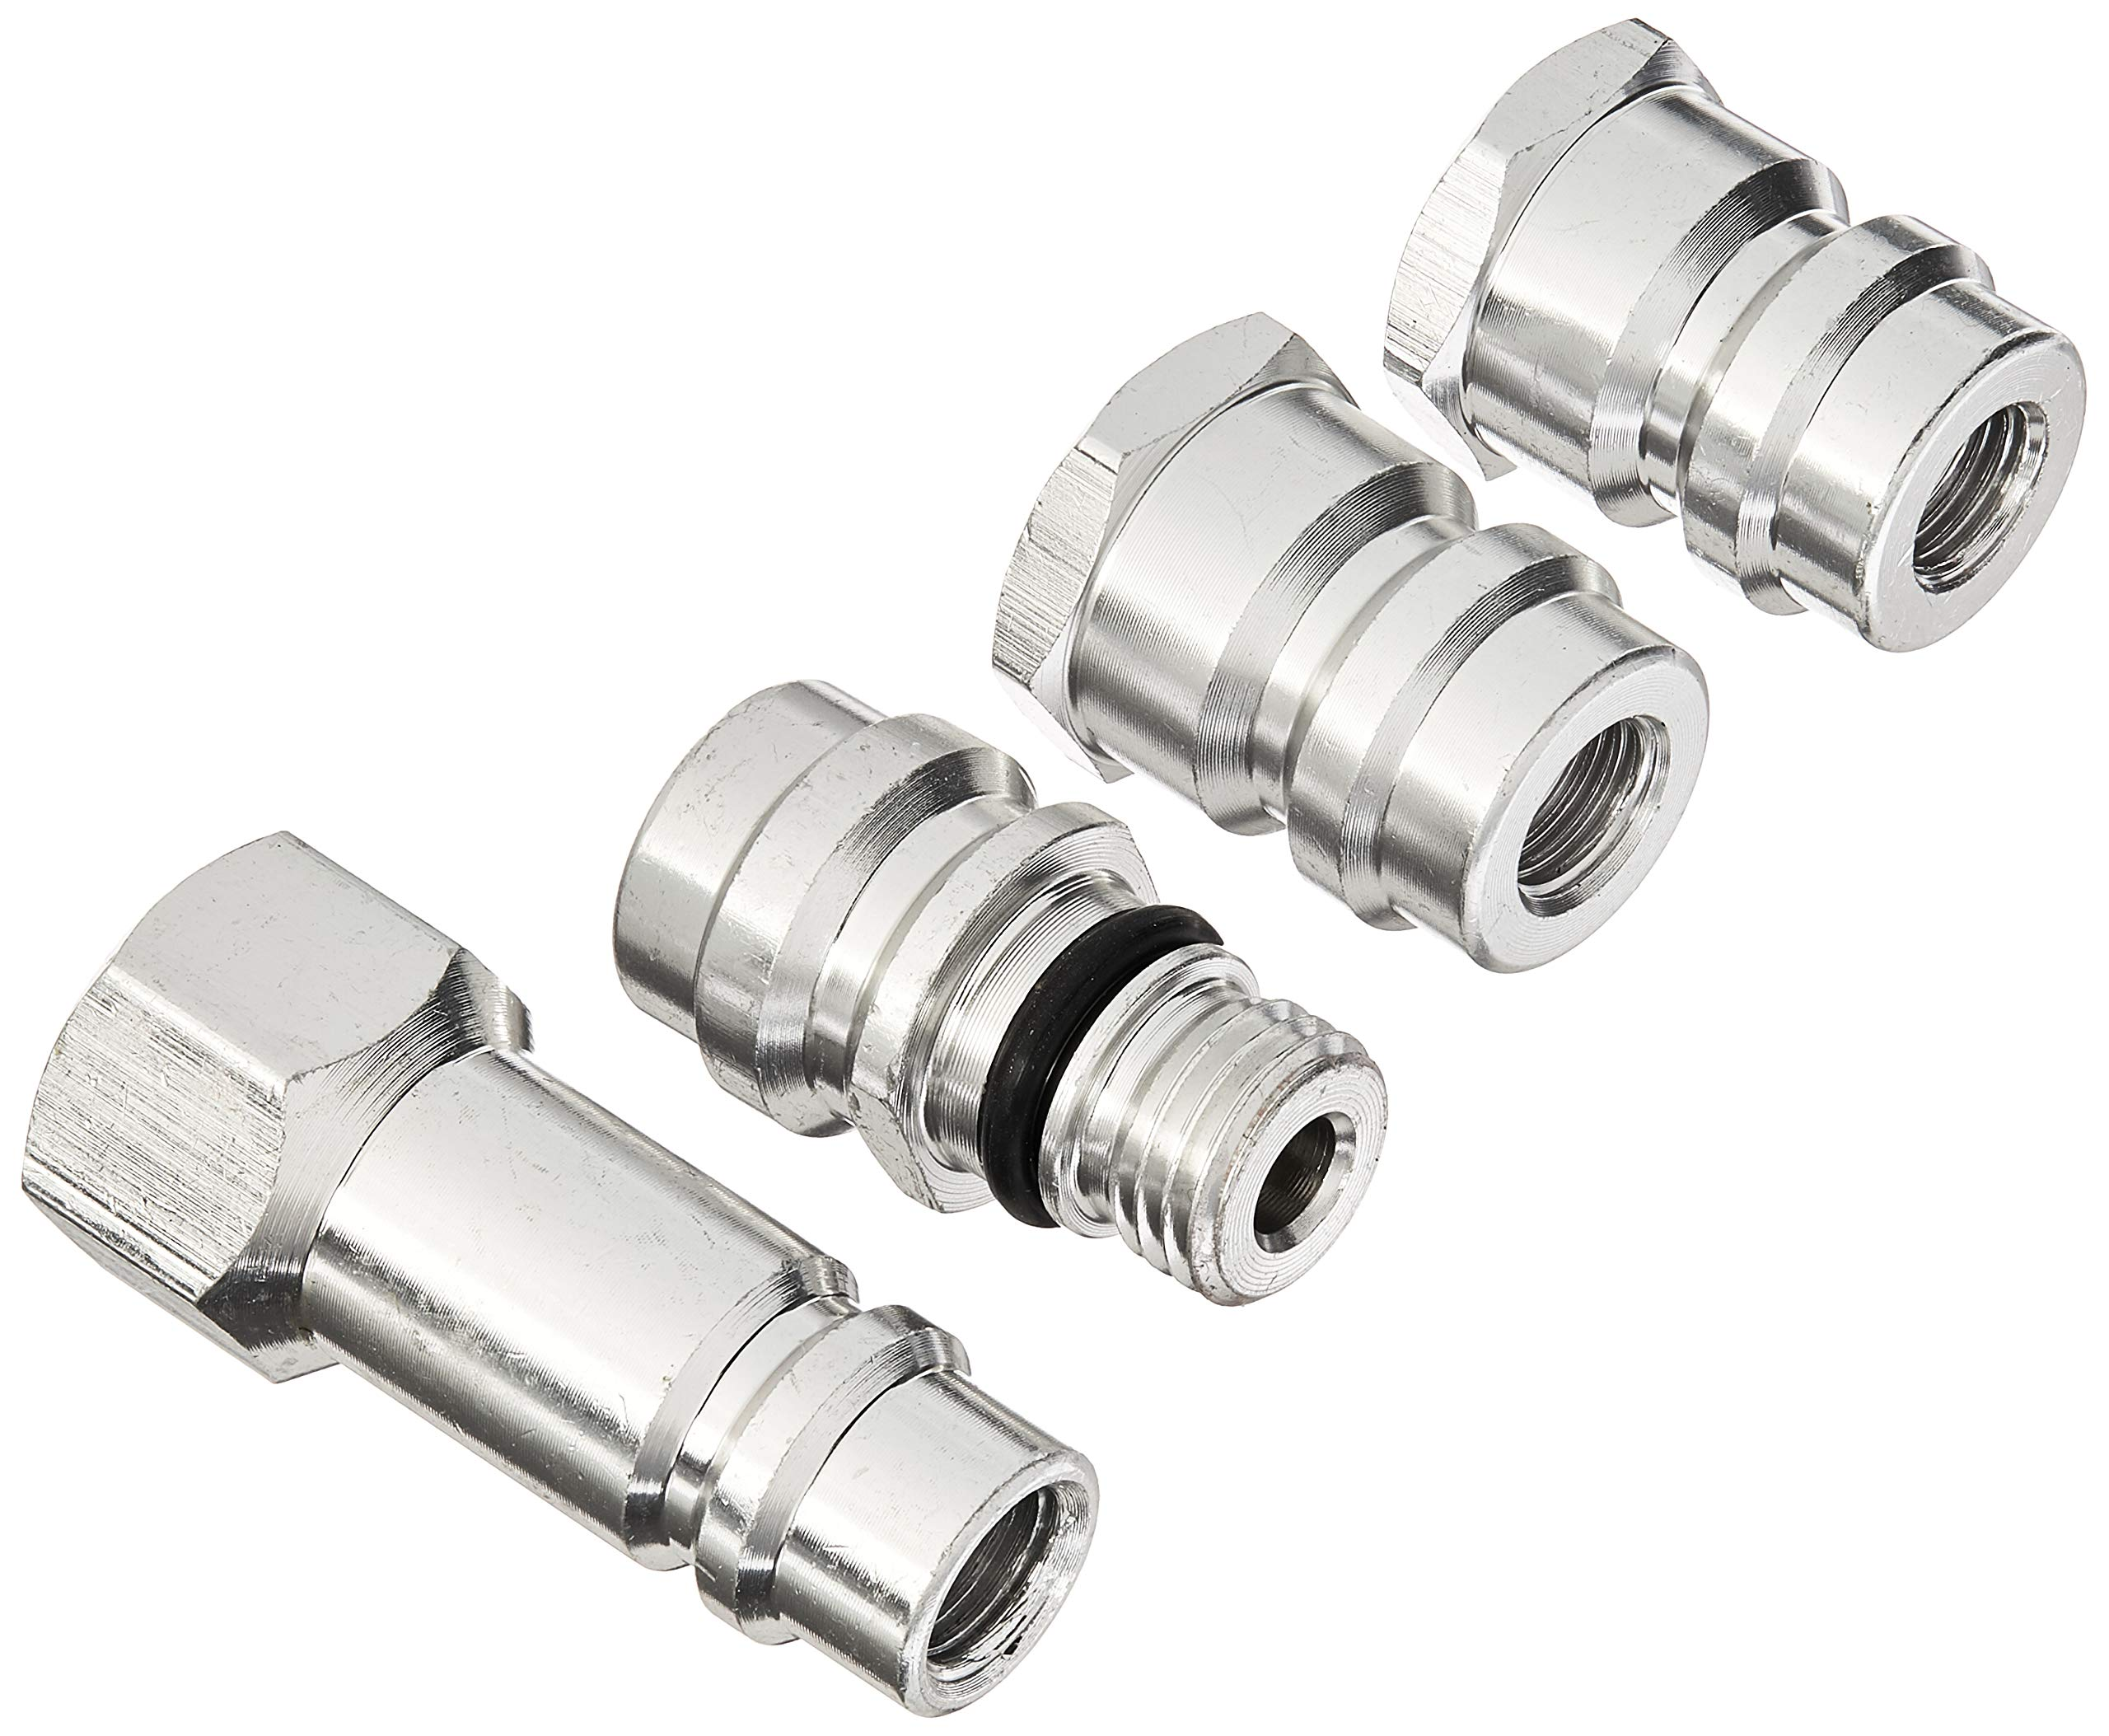 Wadoy R12 to R134a Conversion Kit High//Low Side AC Fitting Port Retrofit Conversion Adapter,R12 to R134a Adapter 1//4 SAE